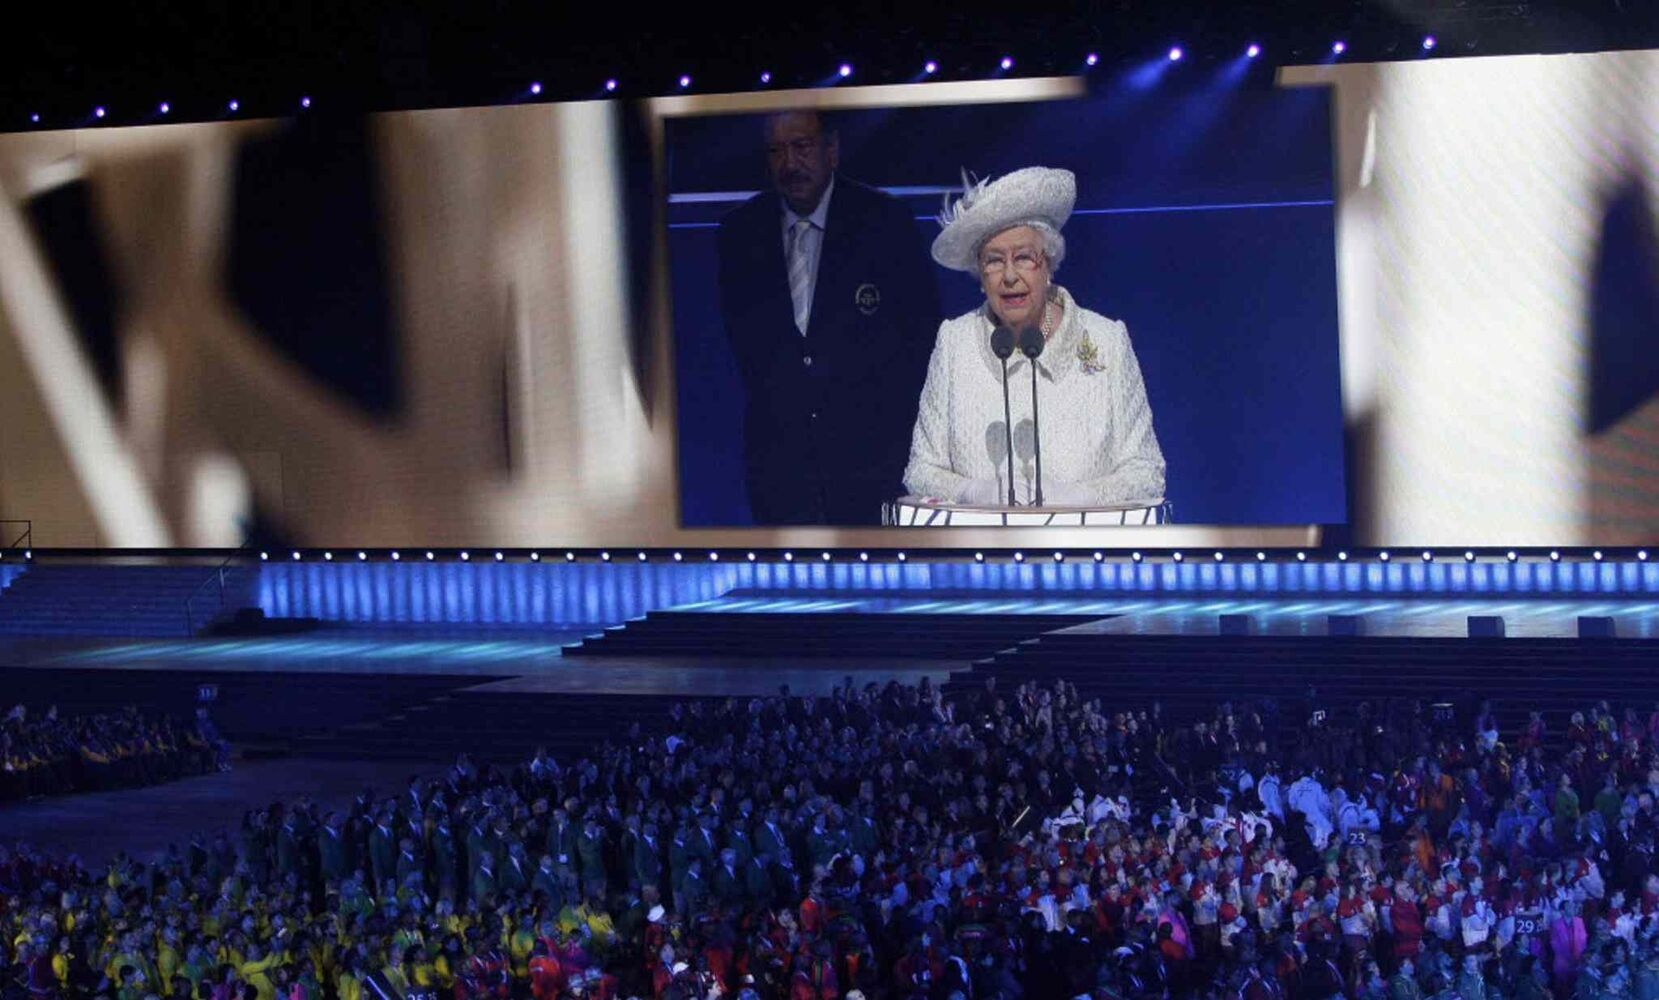 Britain's Queen Elizabeth II is seen on a large video screen as she speaks during the opening ceremony for the Commonwealth Games 2014 in Glasgow, Scotland. (Kirsty Wigglesworth / The Associated Press)